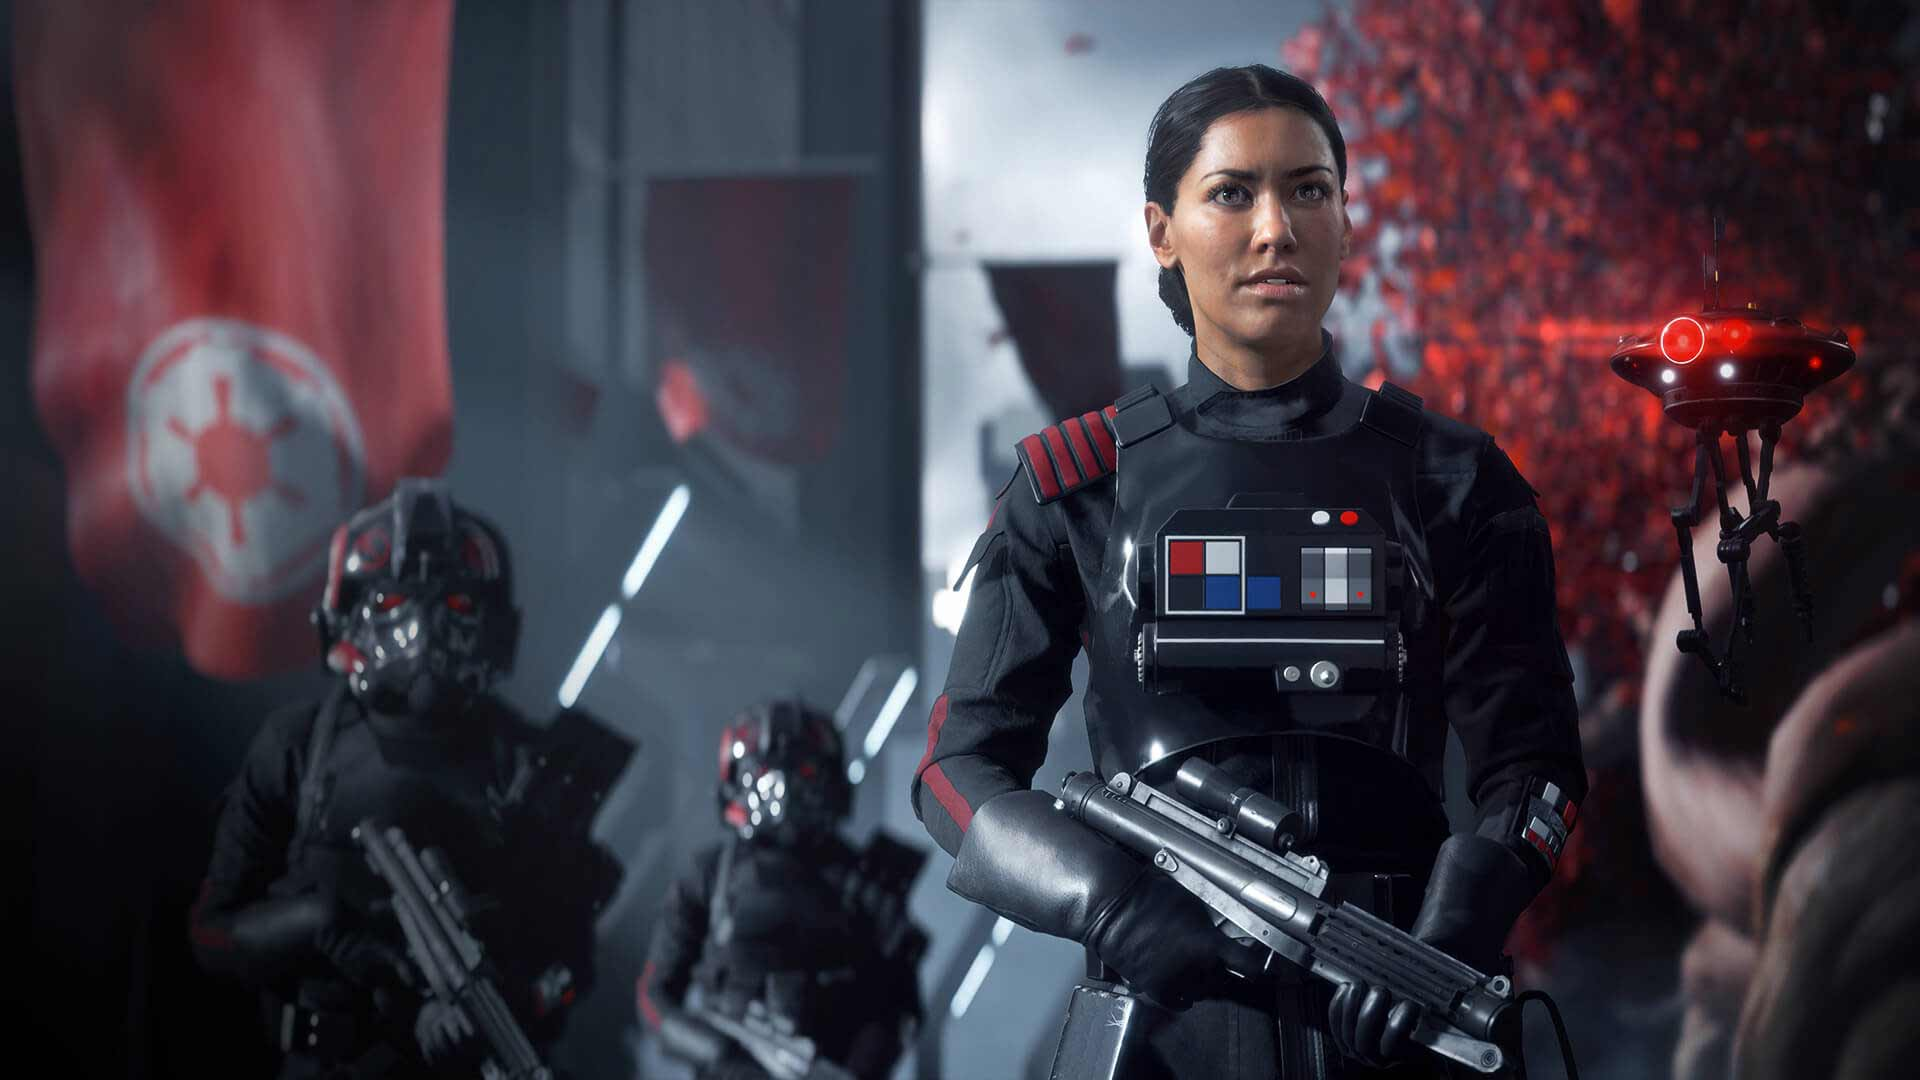 EA Play 2017 E3 2017: What to Expect